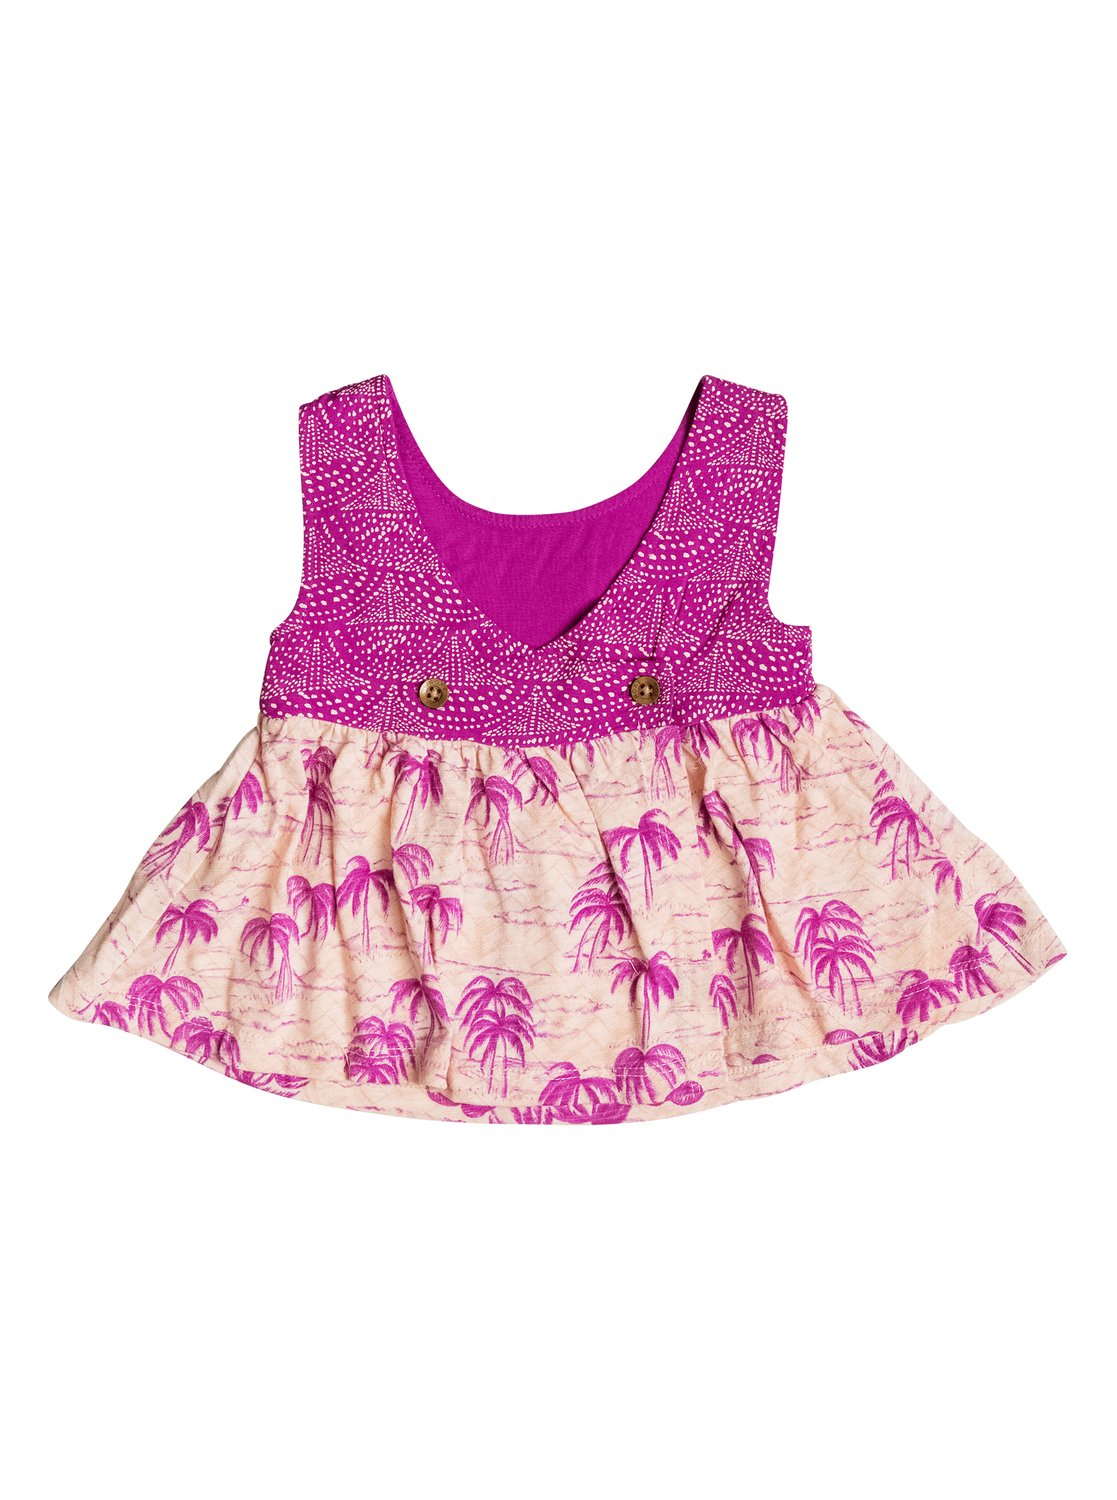 Baby Seagull Sleeveless Top PGRS61391 | Roxy